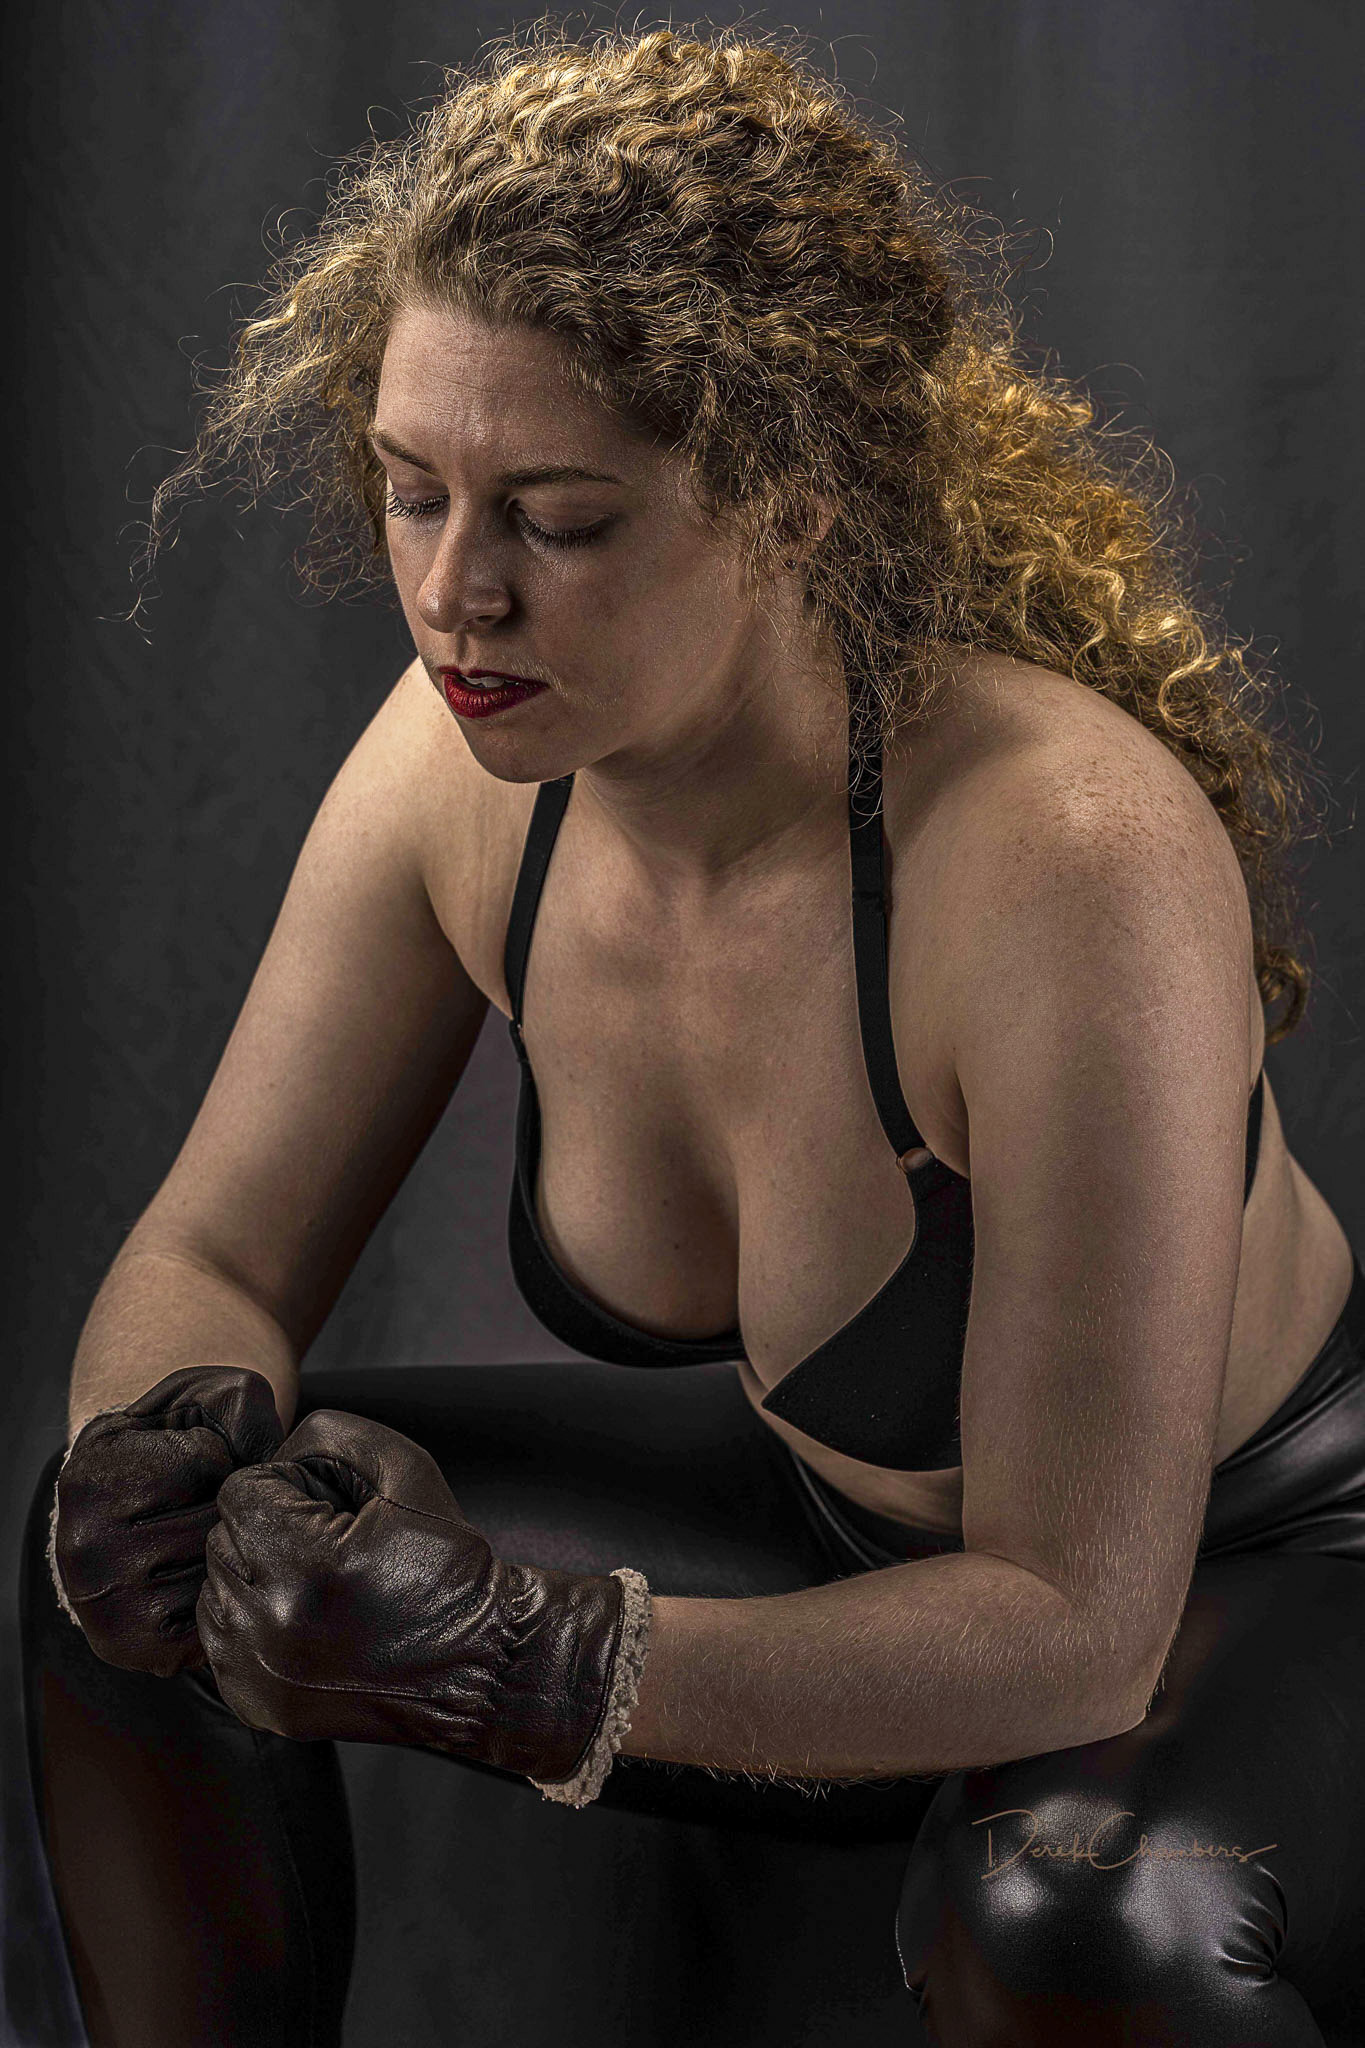 Prepping For The Next Round - (Model: Kendra Cox) - Derek Chambe